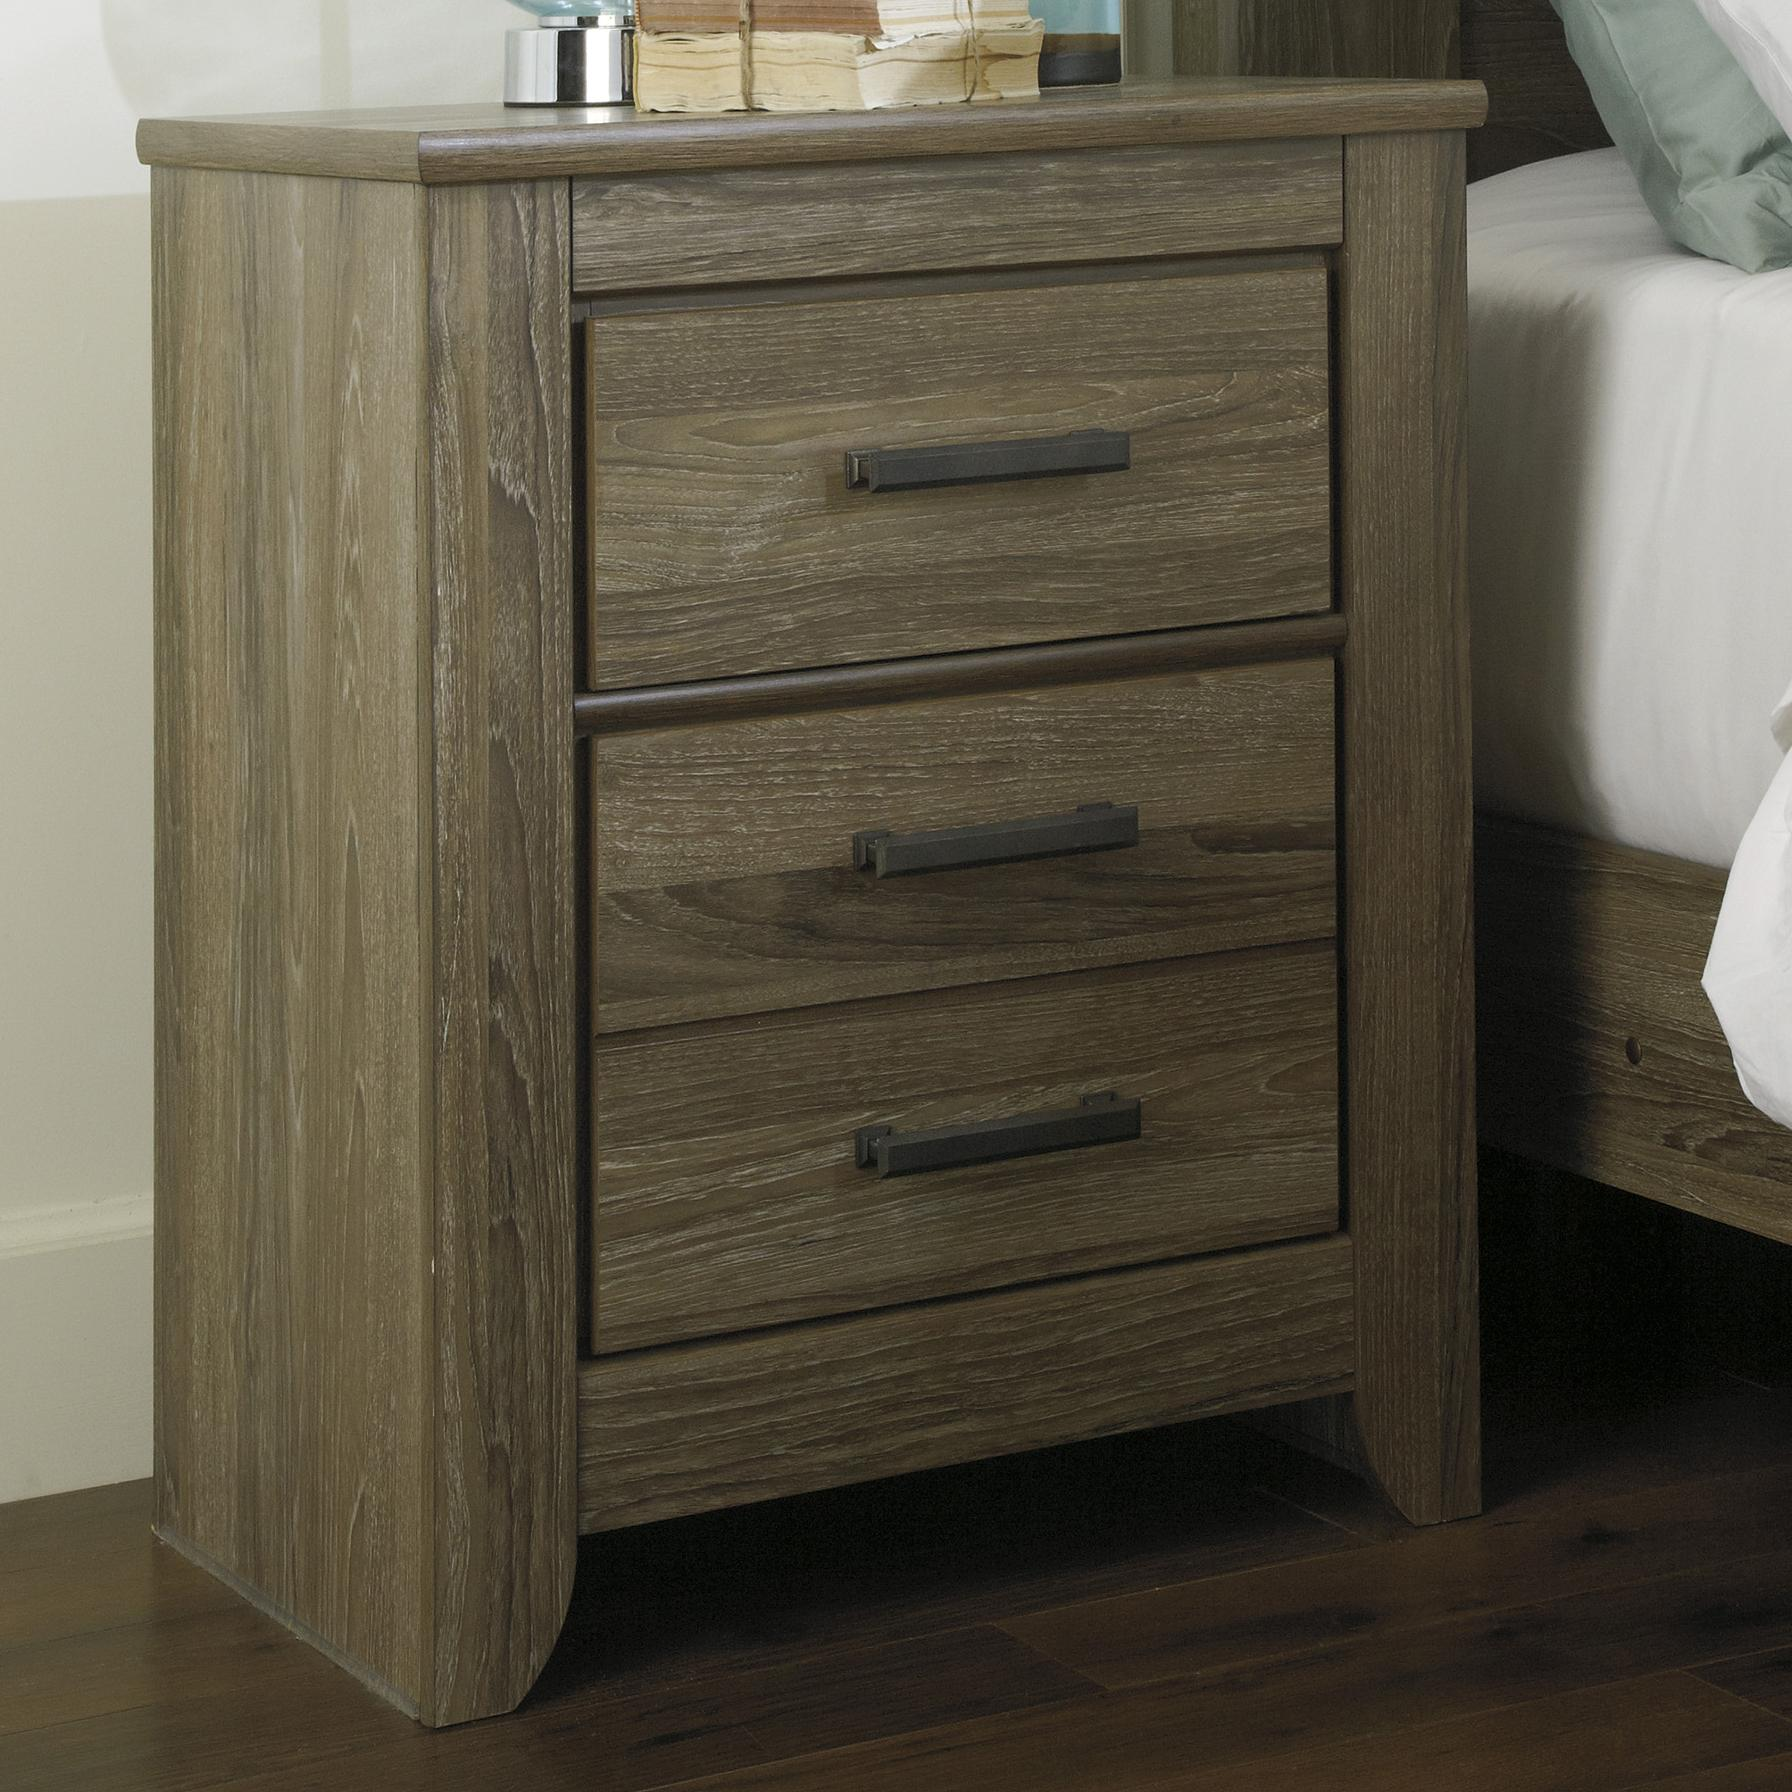 Signature Design by Ashley Zelen Two Drawer Night Stand - Item Number: B248-92